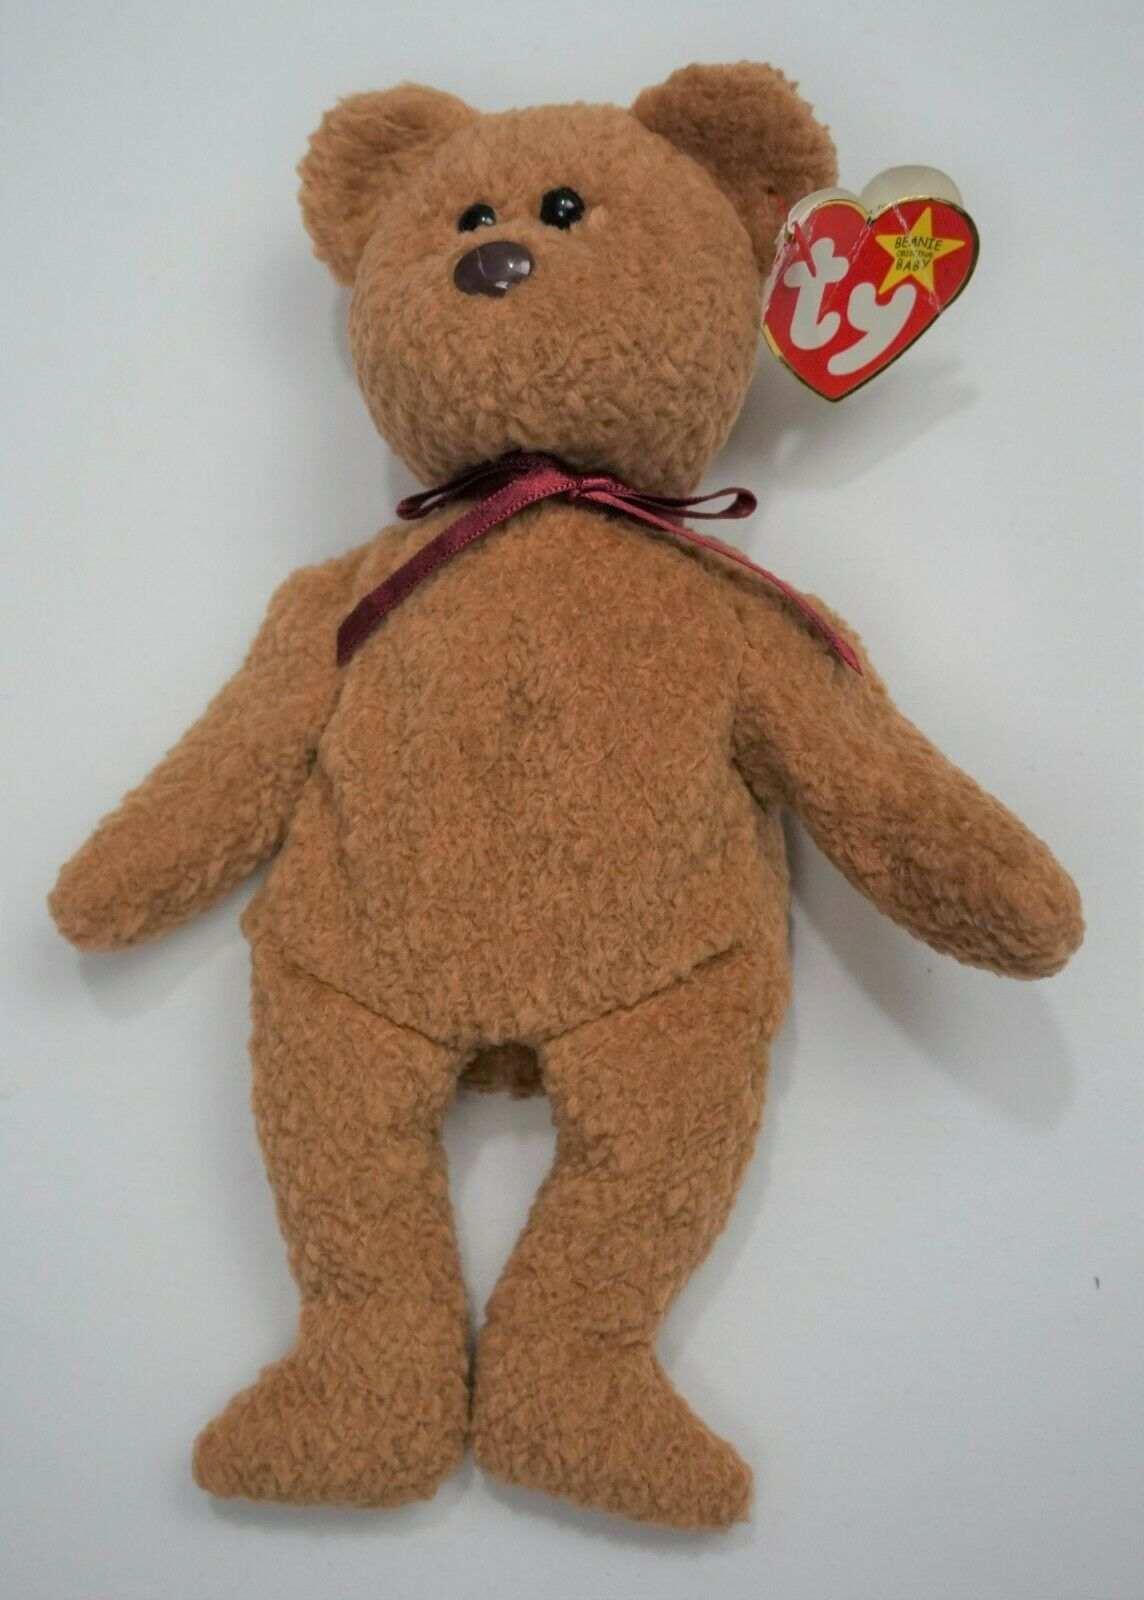 Rare vintage TY Beanie Baby 1996 Curly The Bear Retired with 15 Errors